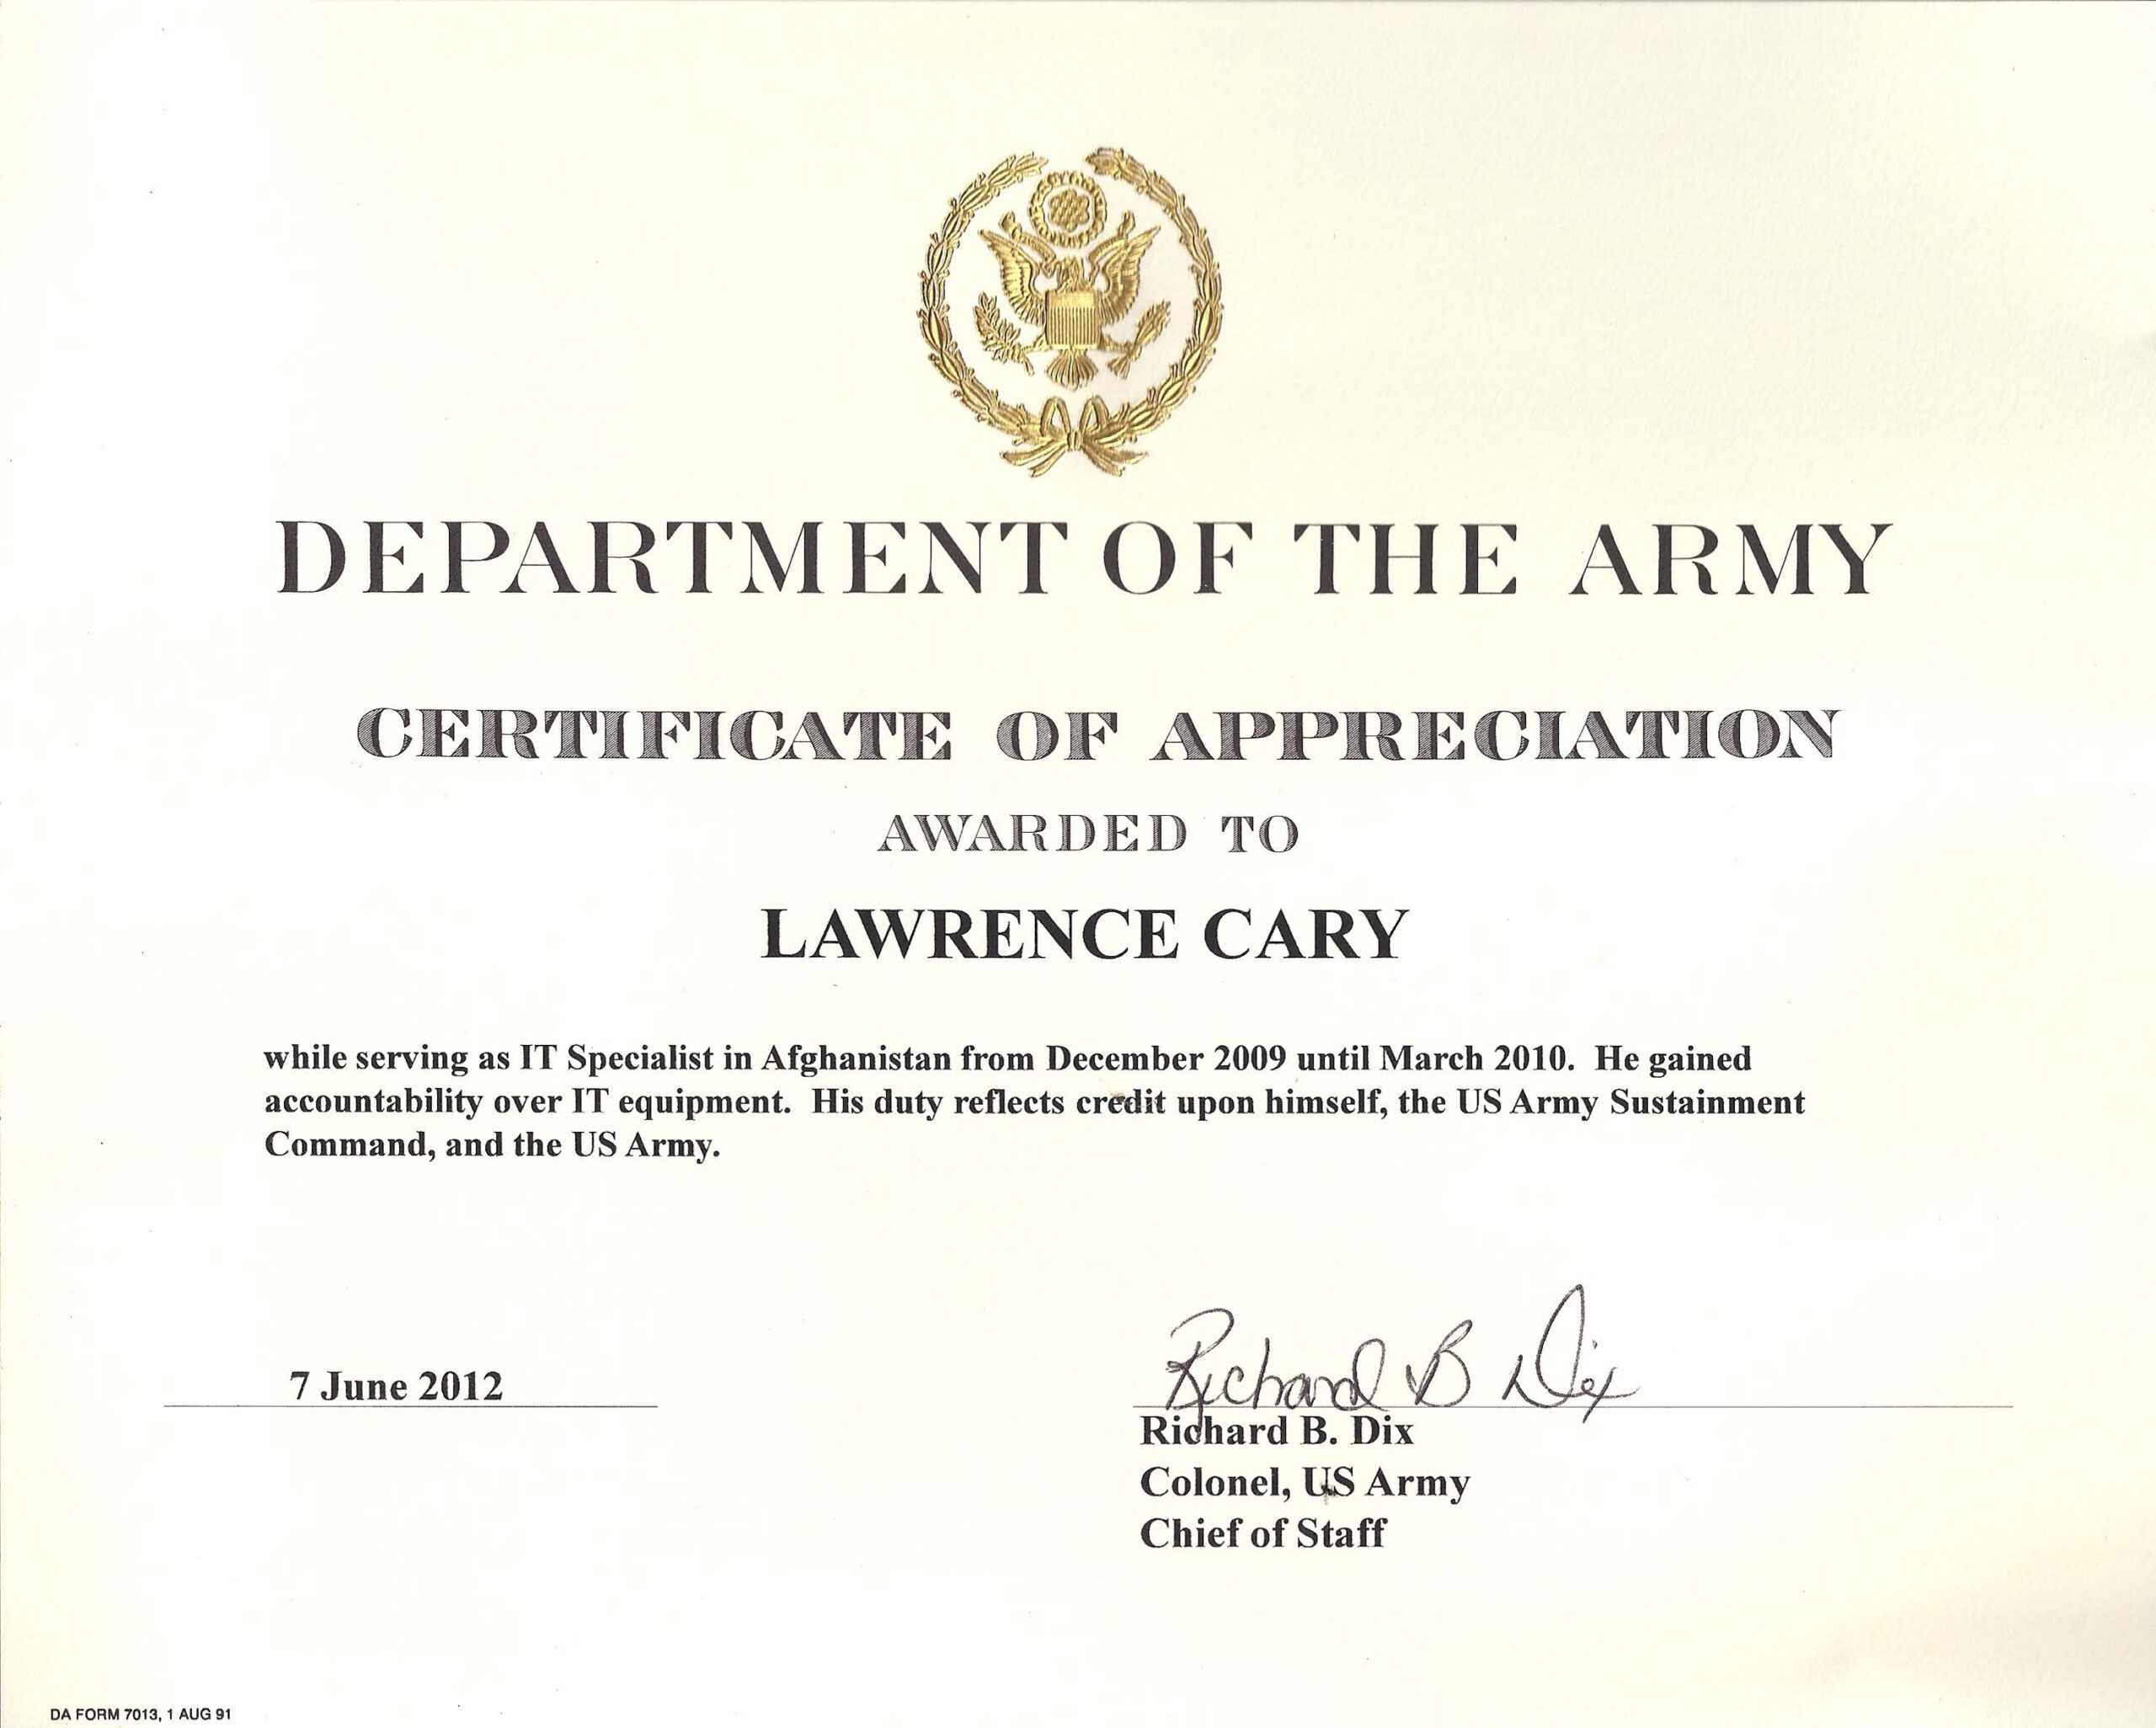 Army Certificate Of Achievement Template Pertaining To Certificate Of Achievement Army Template